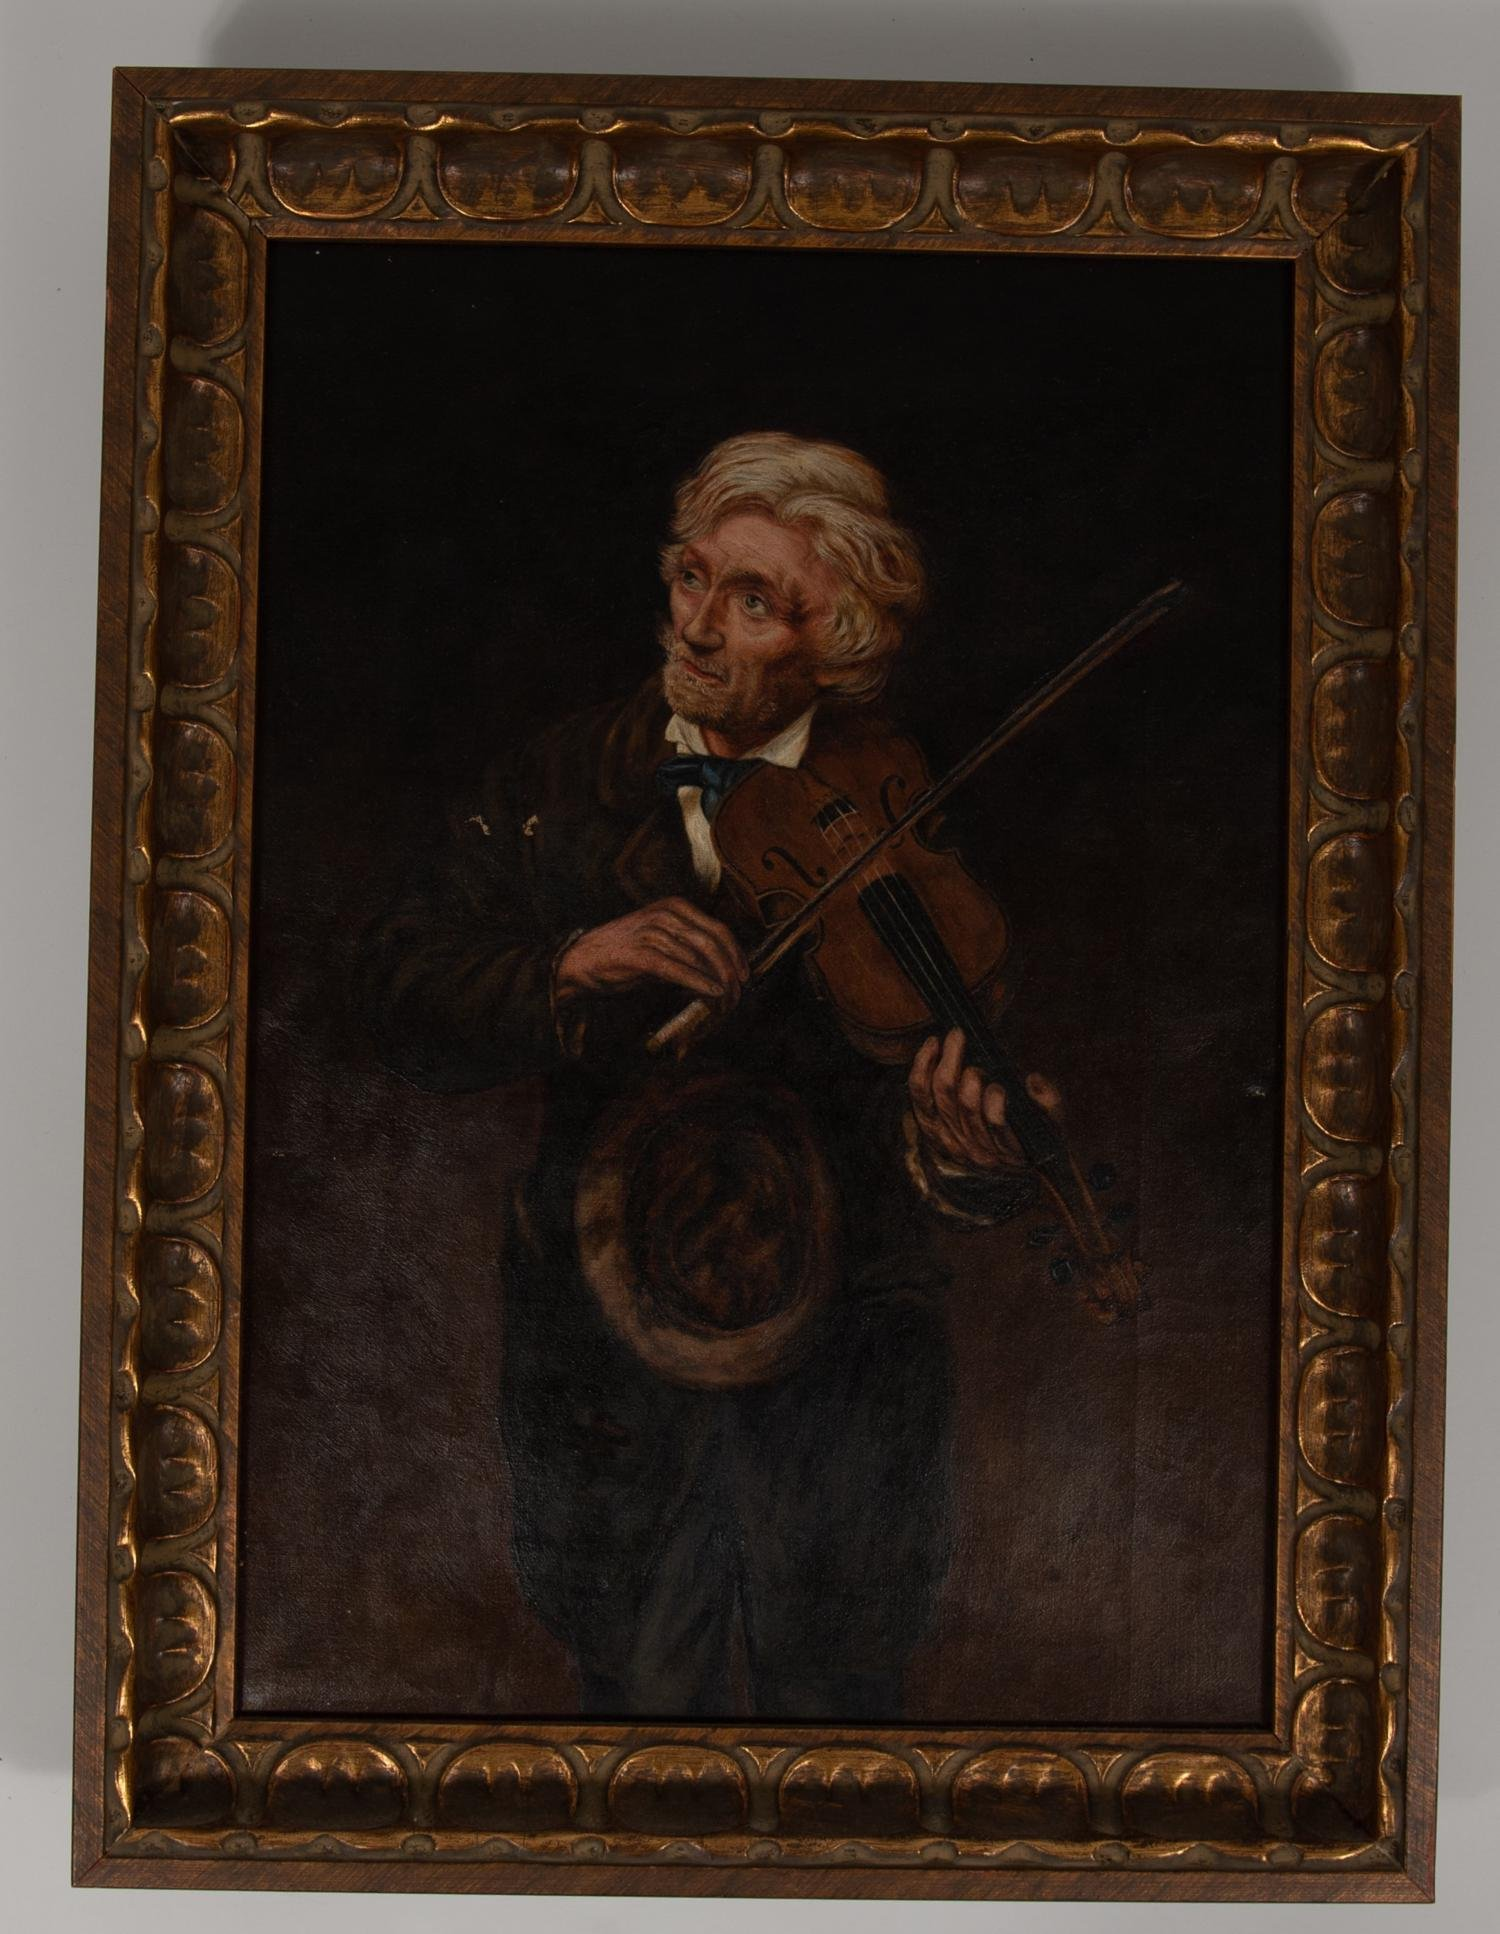 Maughlin, Portrait of Man w/ Fiddle, Oil on Canvas